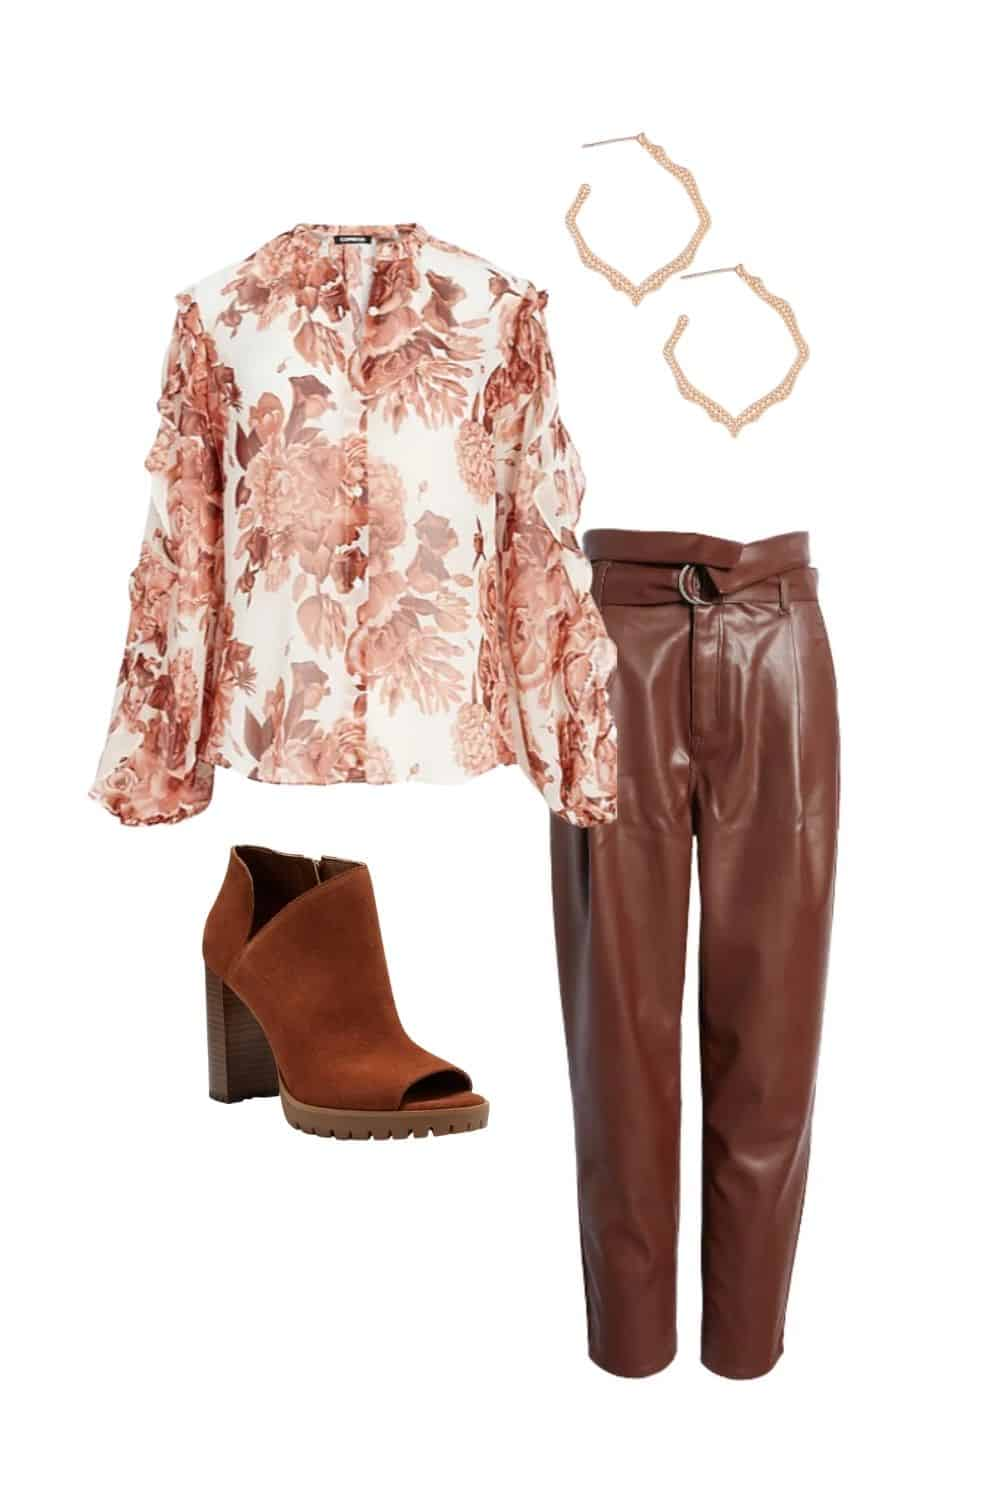 fall colors to wear, feminine and edgy fall outfit with blush and brown